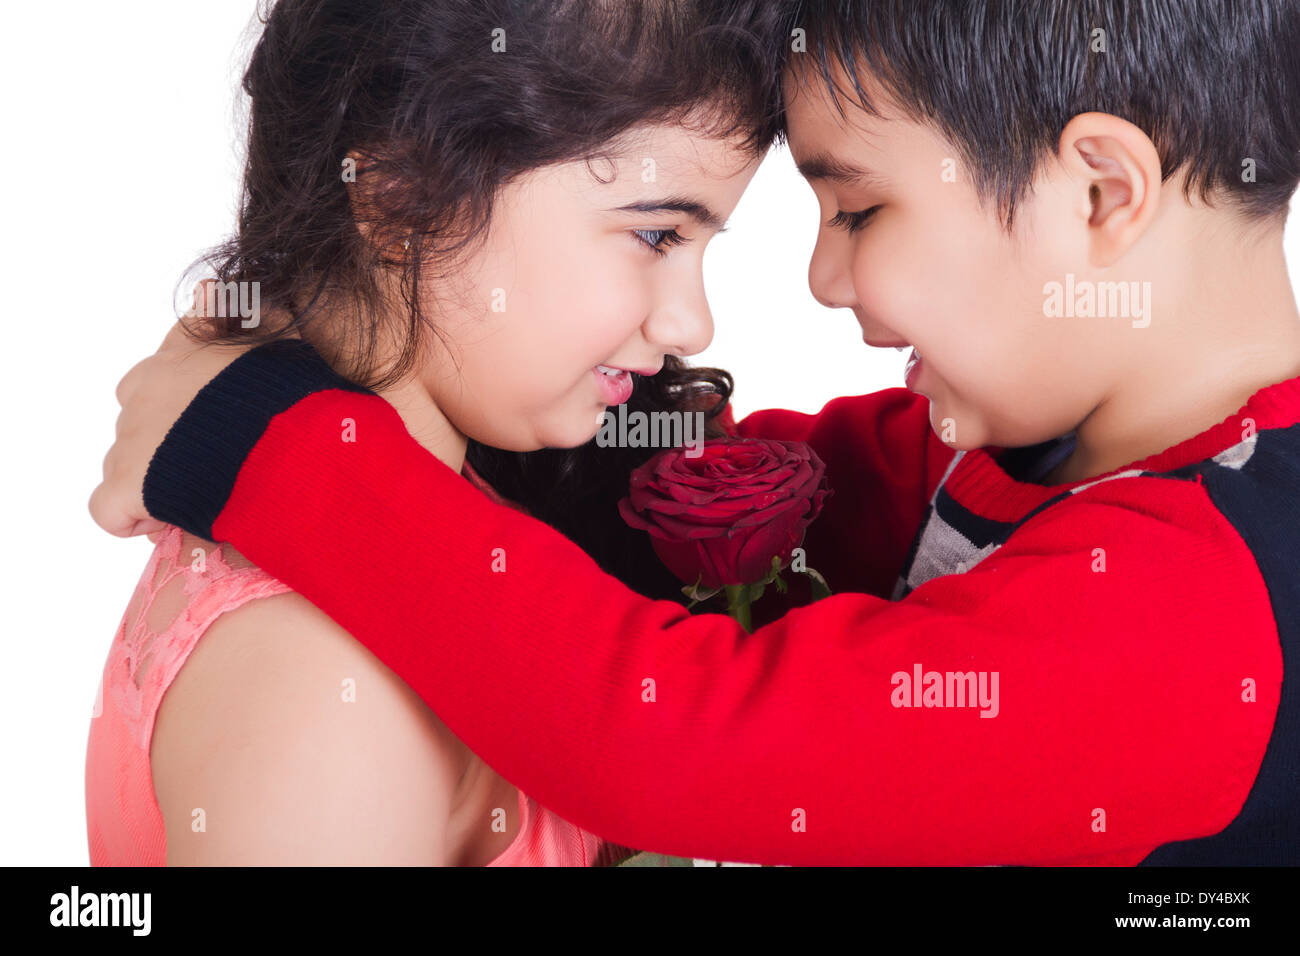 indian kids couple romance stock photo royalty free image